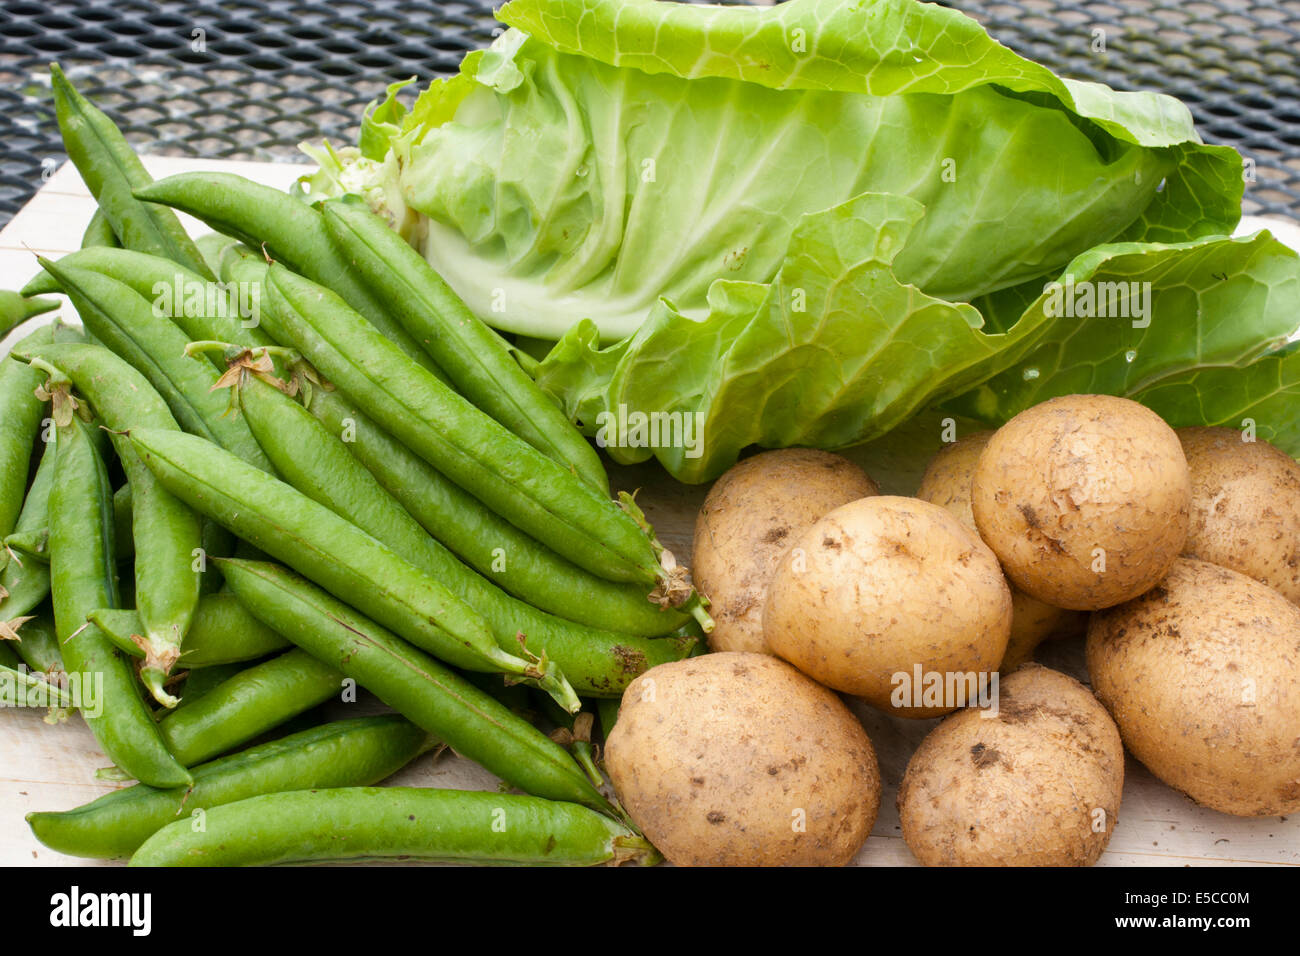 fresh-allotment-grown-organic-peas-potatoes-and-cabbage-picked-for-E5CC0M.jpg